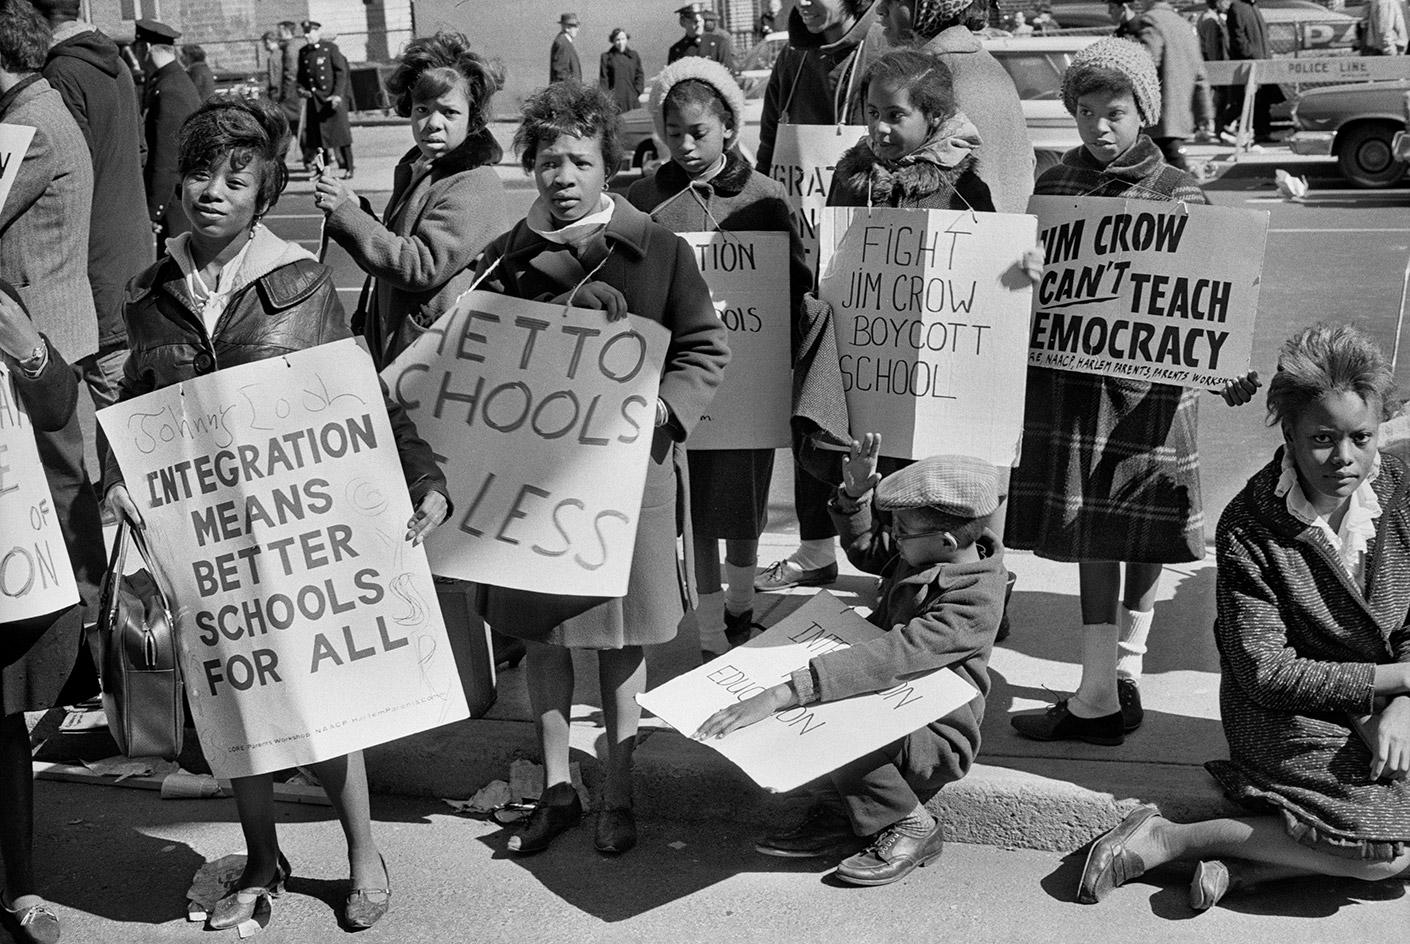 Protest, Power, People: New York's Streets In 1960s-1980s